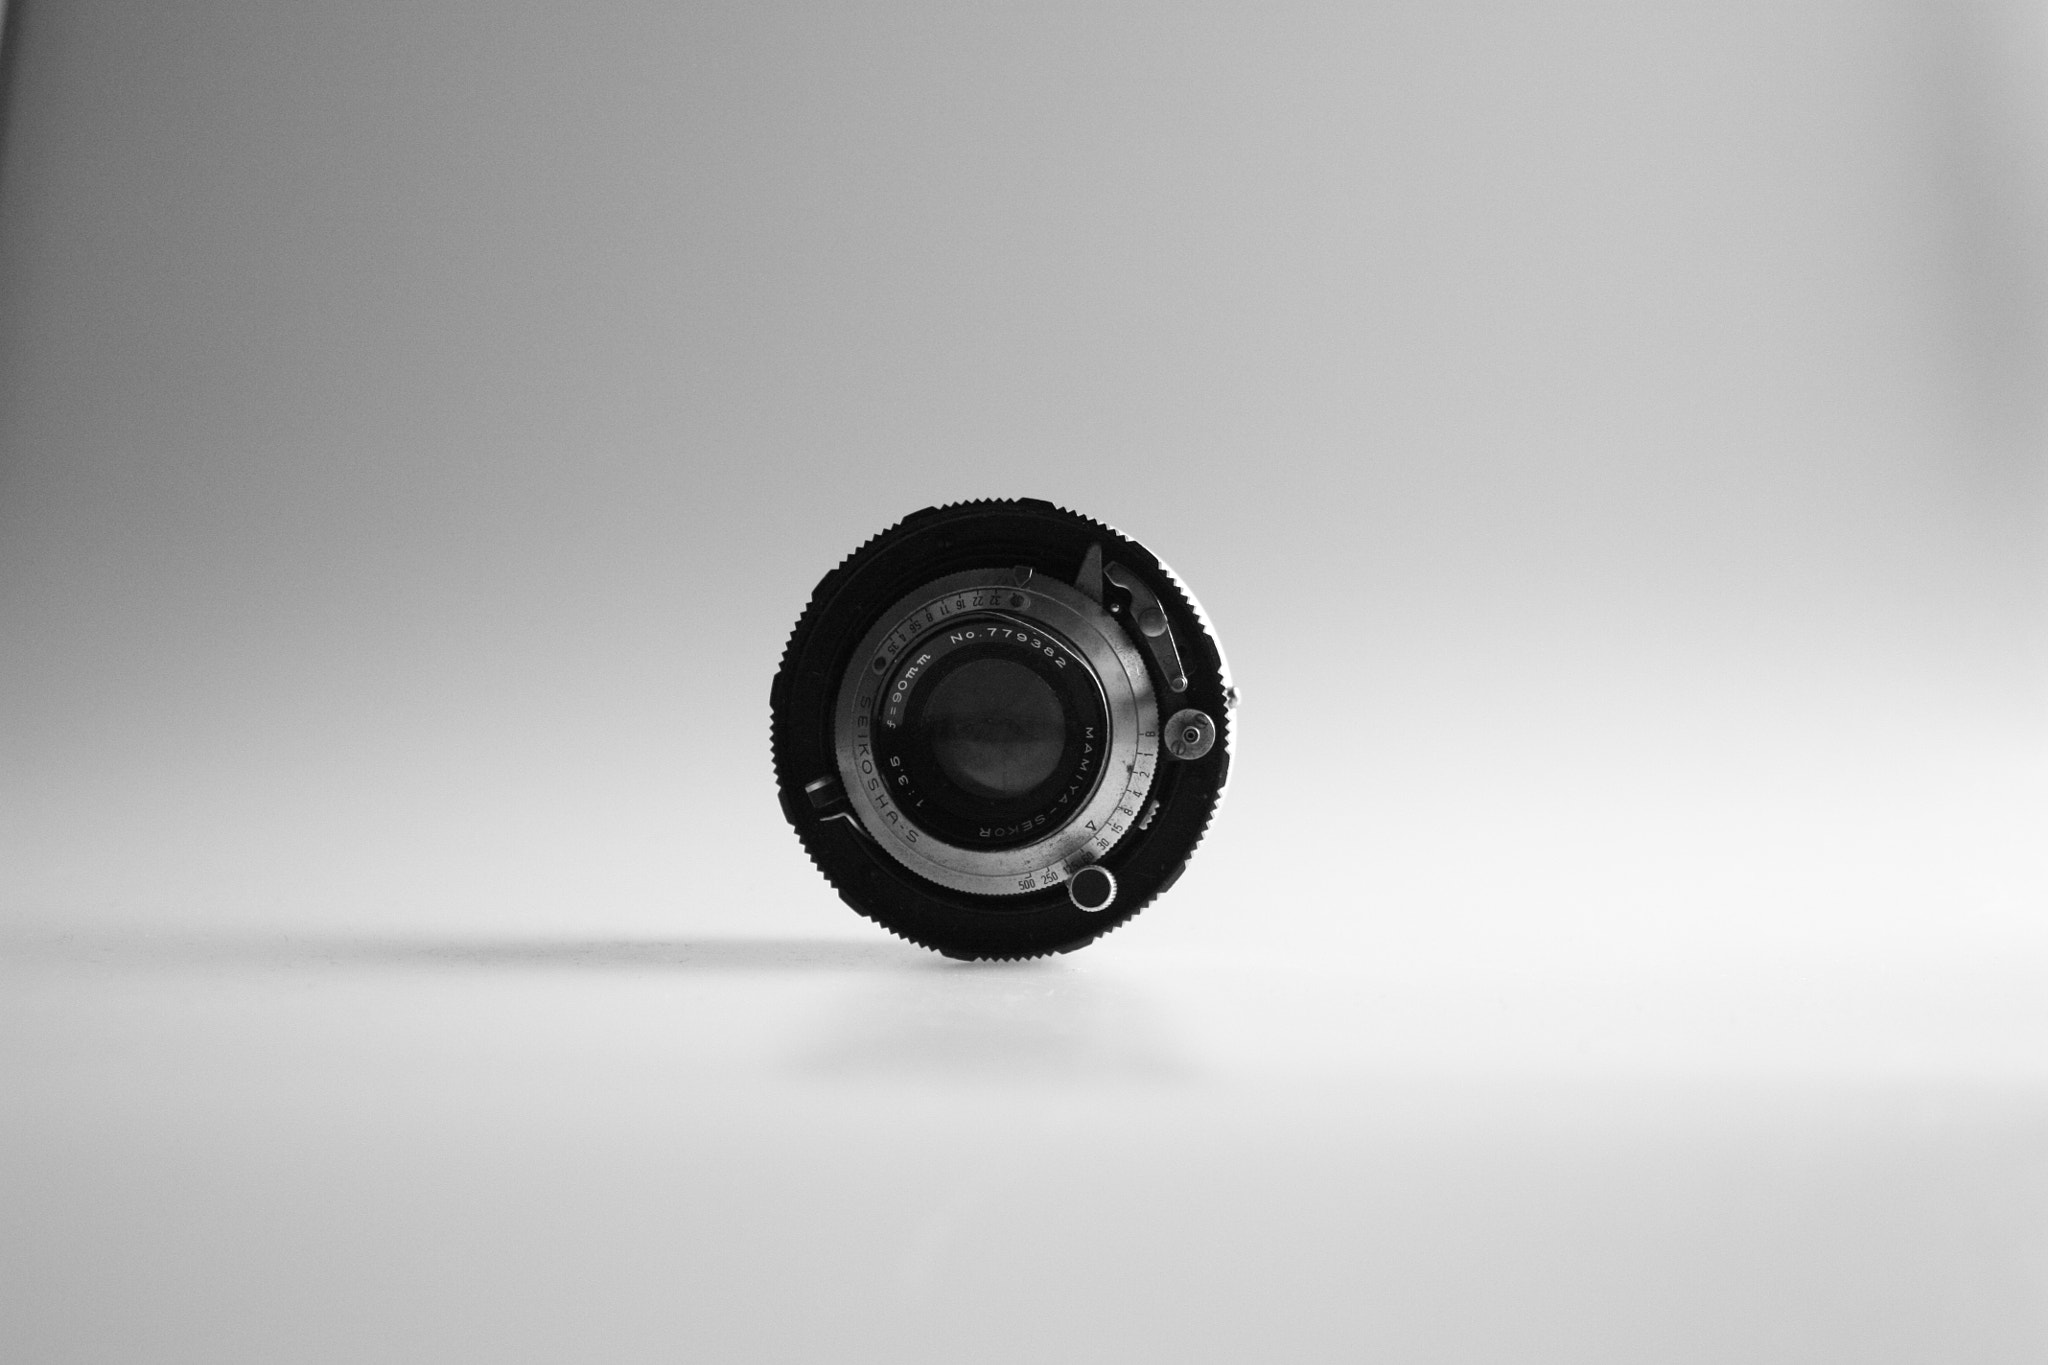 Photograph Camera Lens by Adam Wilson on 500px